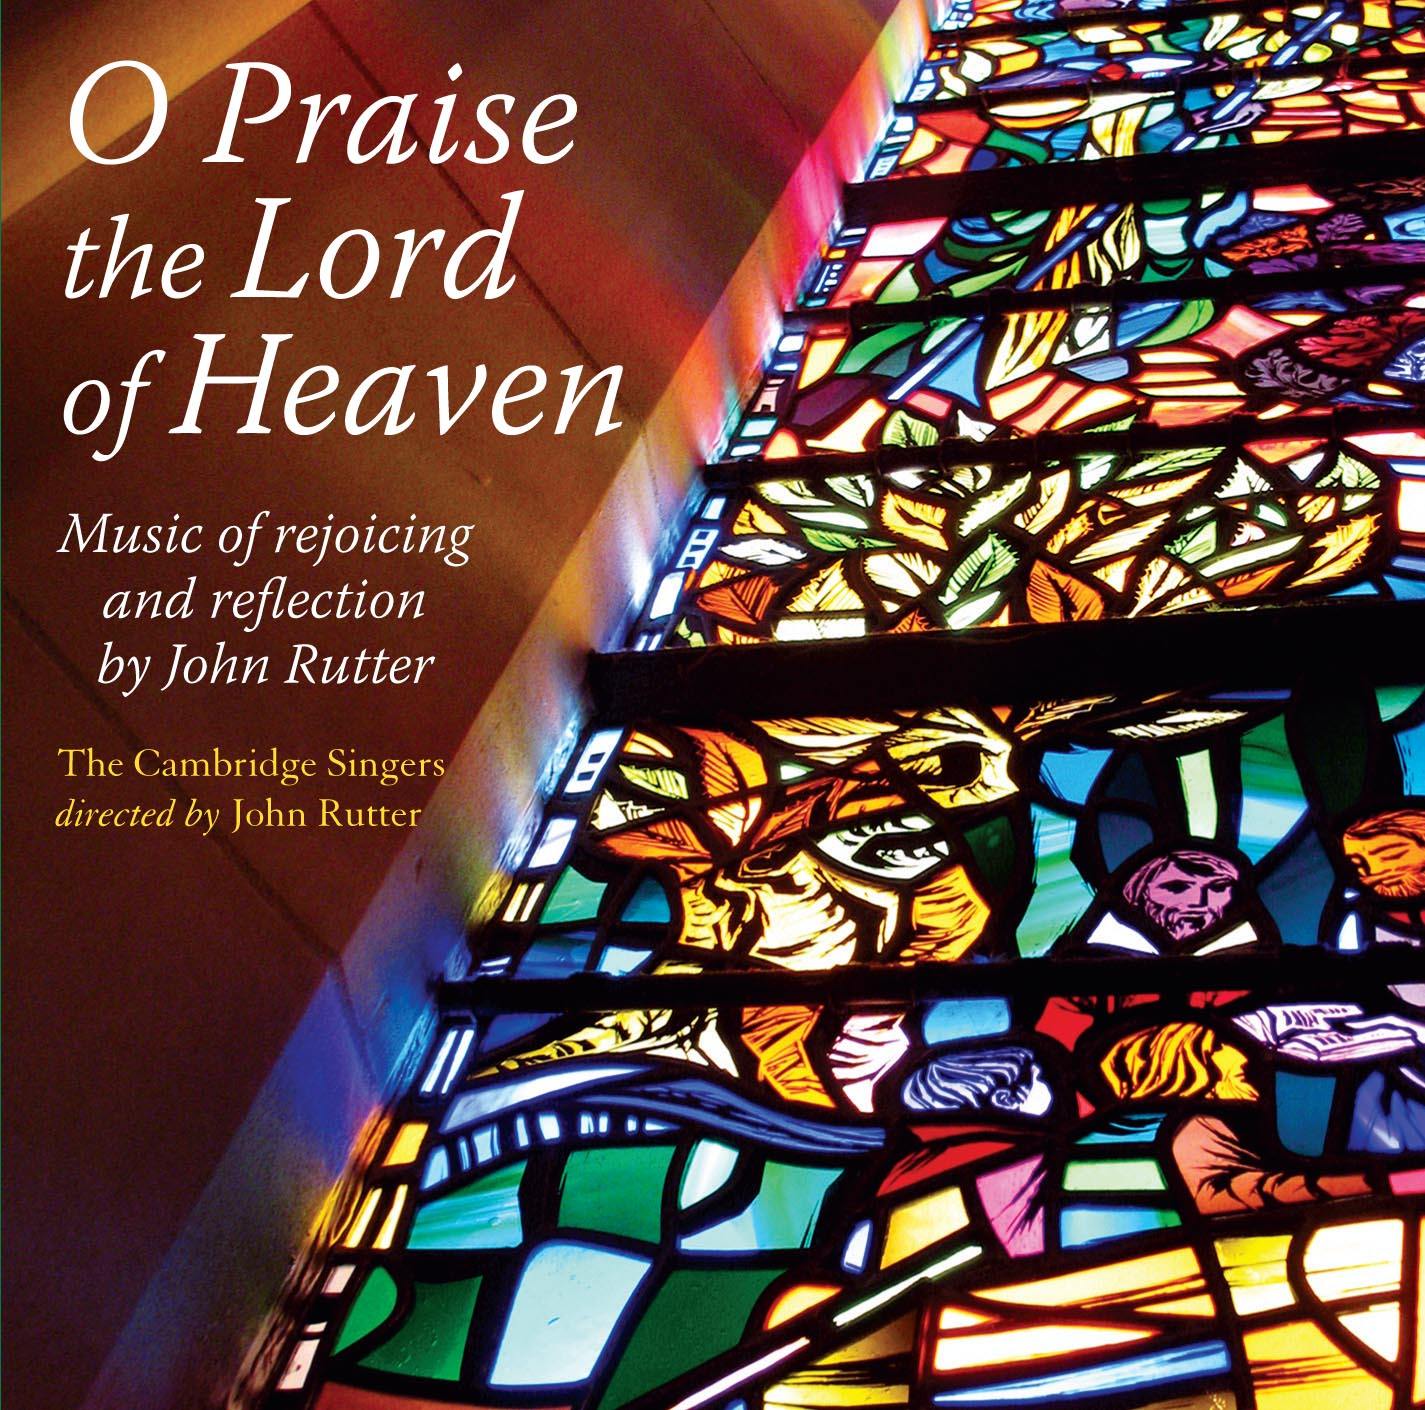 O Praise the Lord of Heaven CD released by Collegium